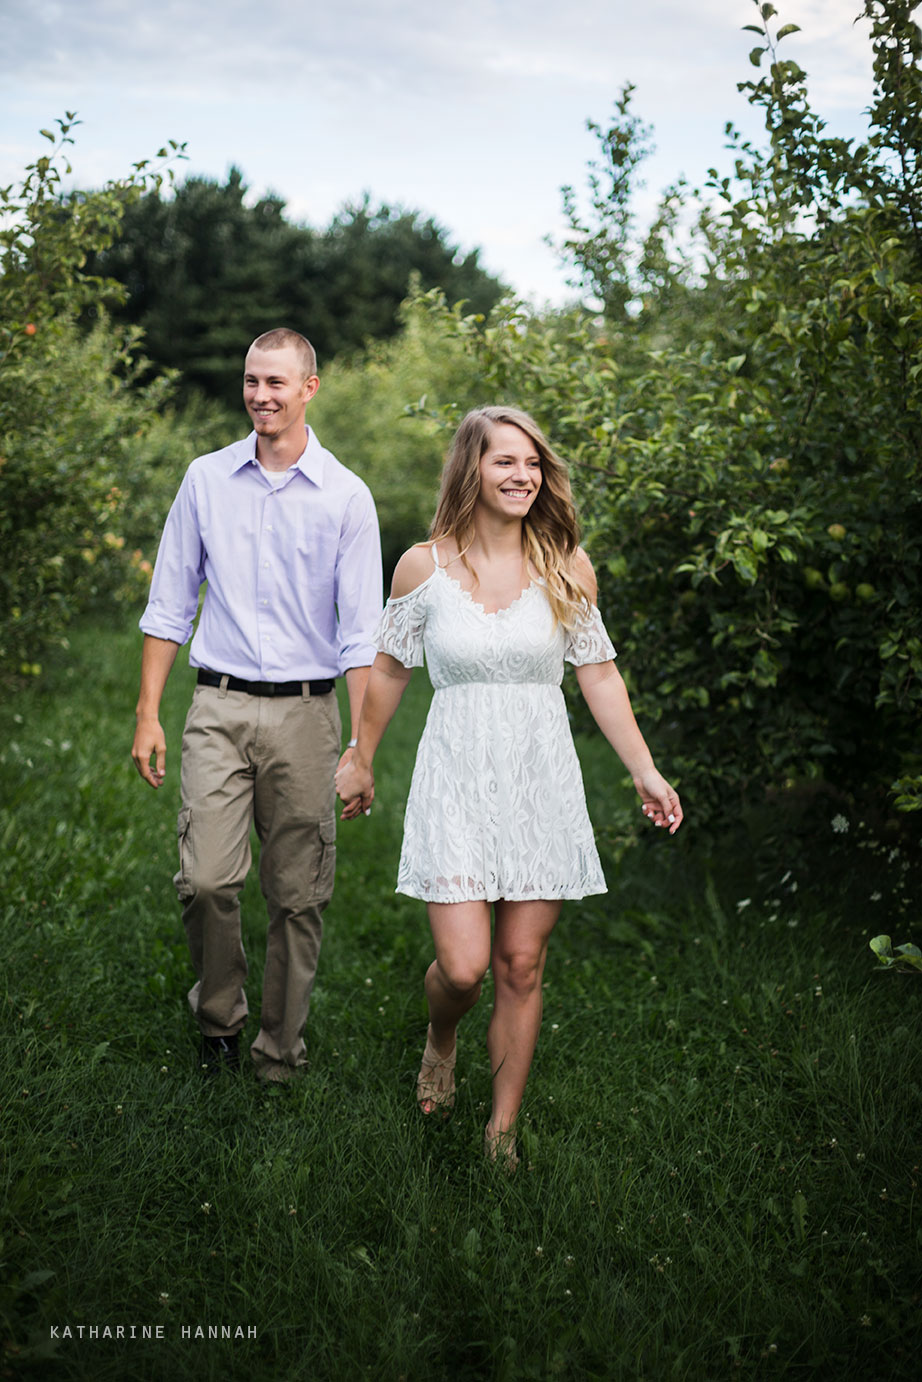 Engagement photos at County Line Orchard